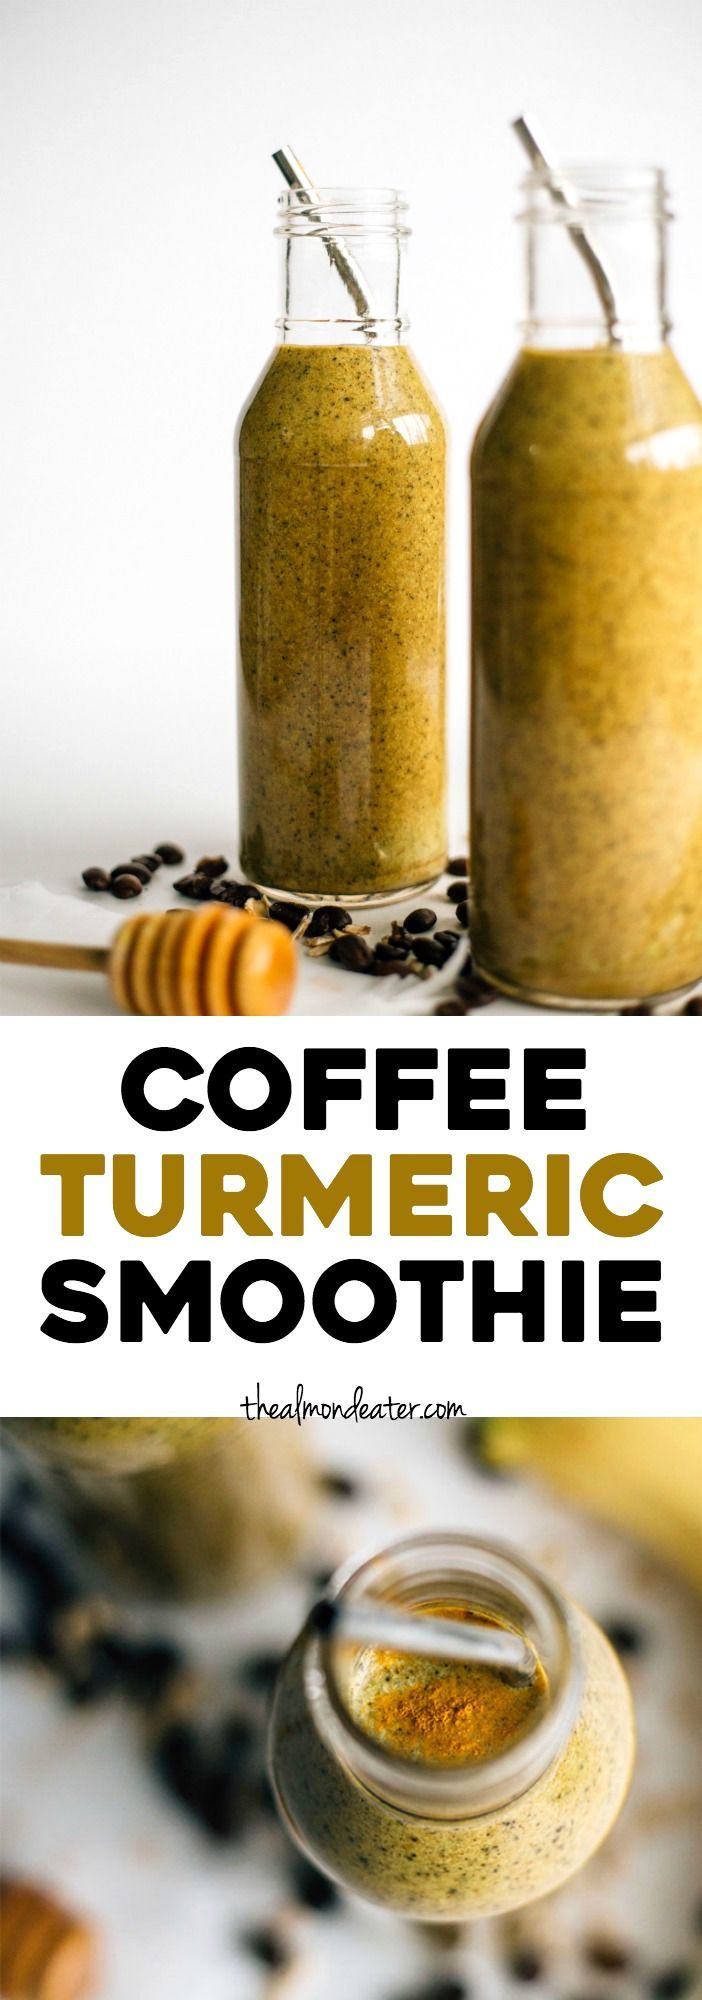 Coffee Turmeric Smoothie | A smoothie full of good-for-you ingredients like turmeric and ginger AND it has coffee in it, too! | http://thealmondeater.com